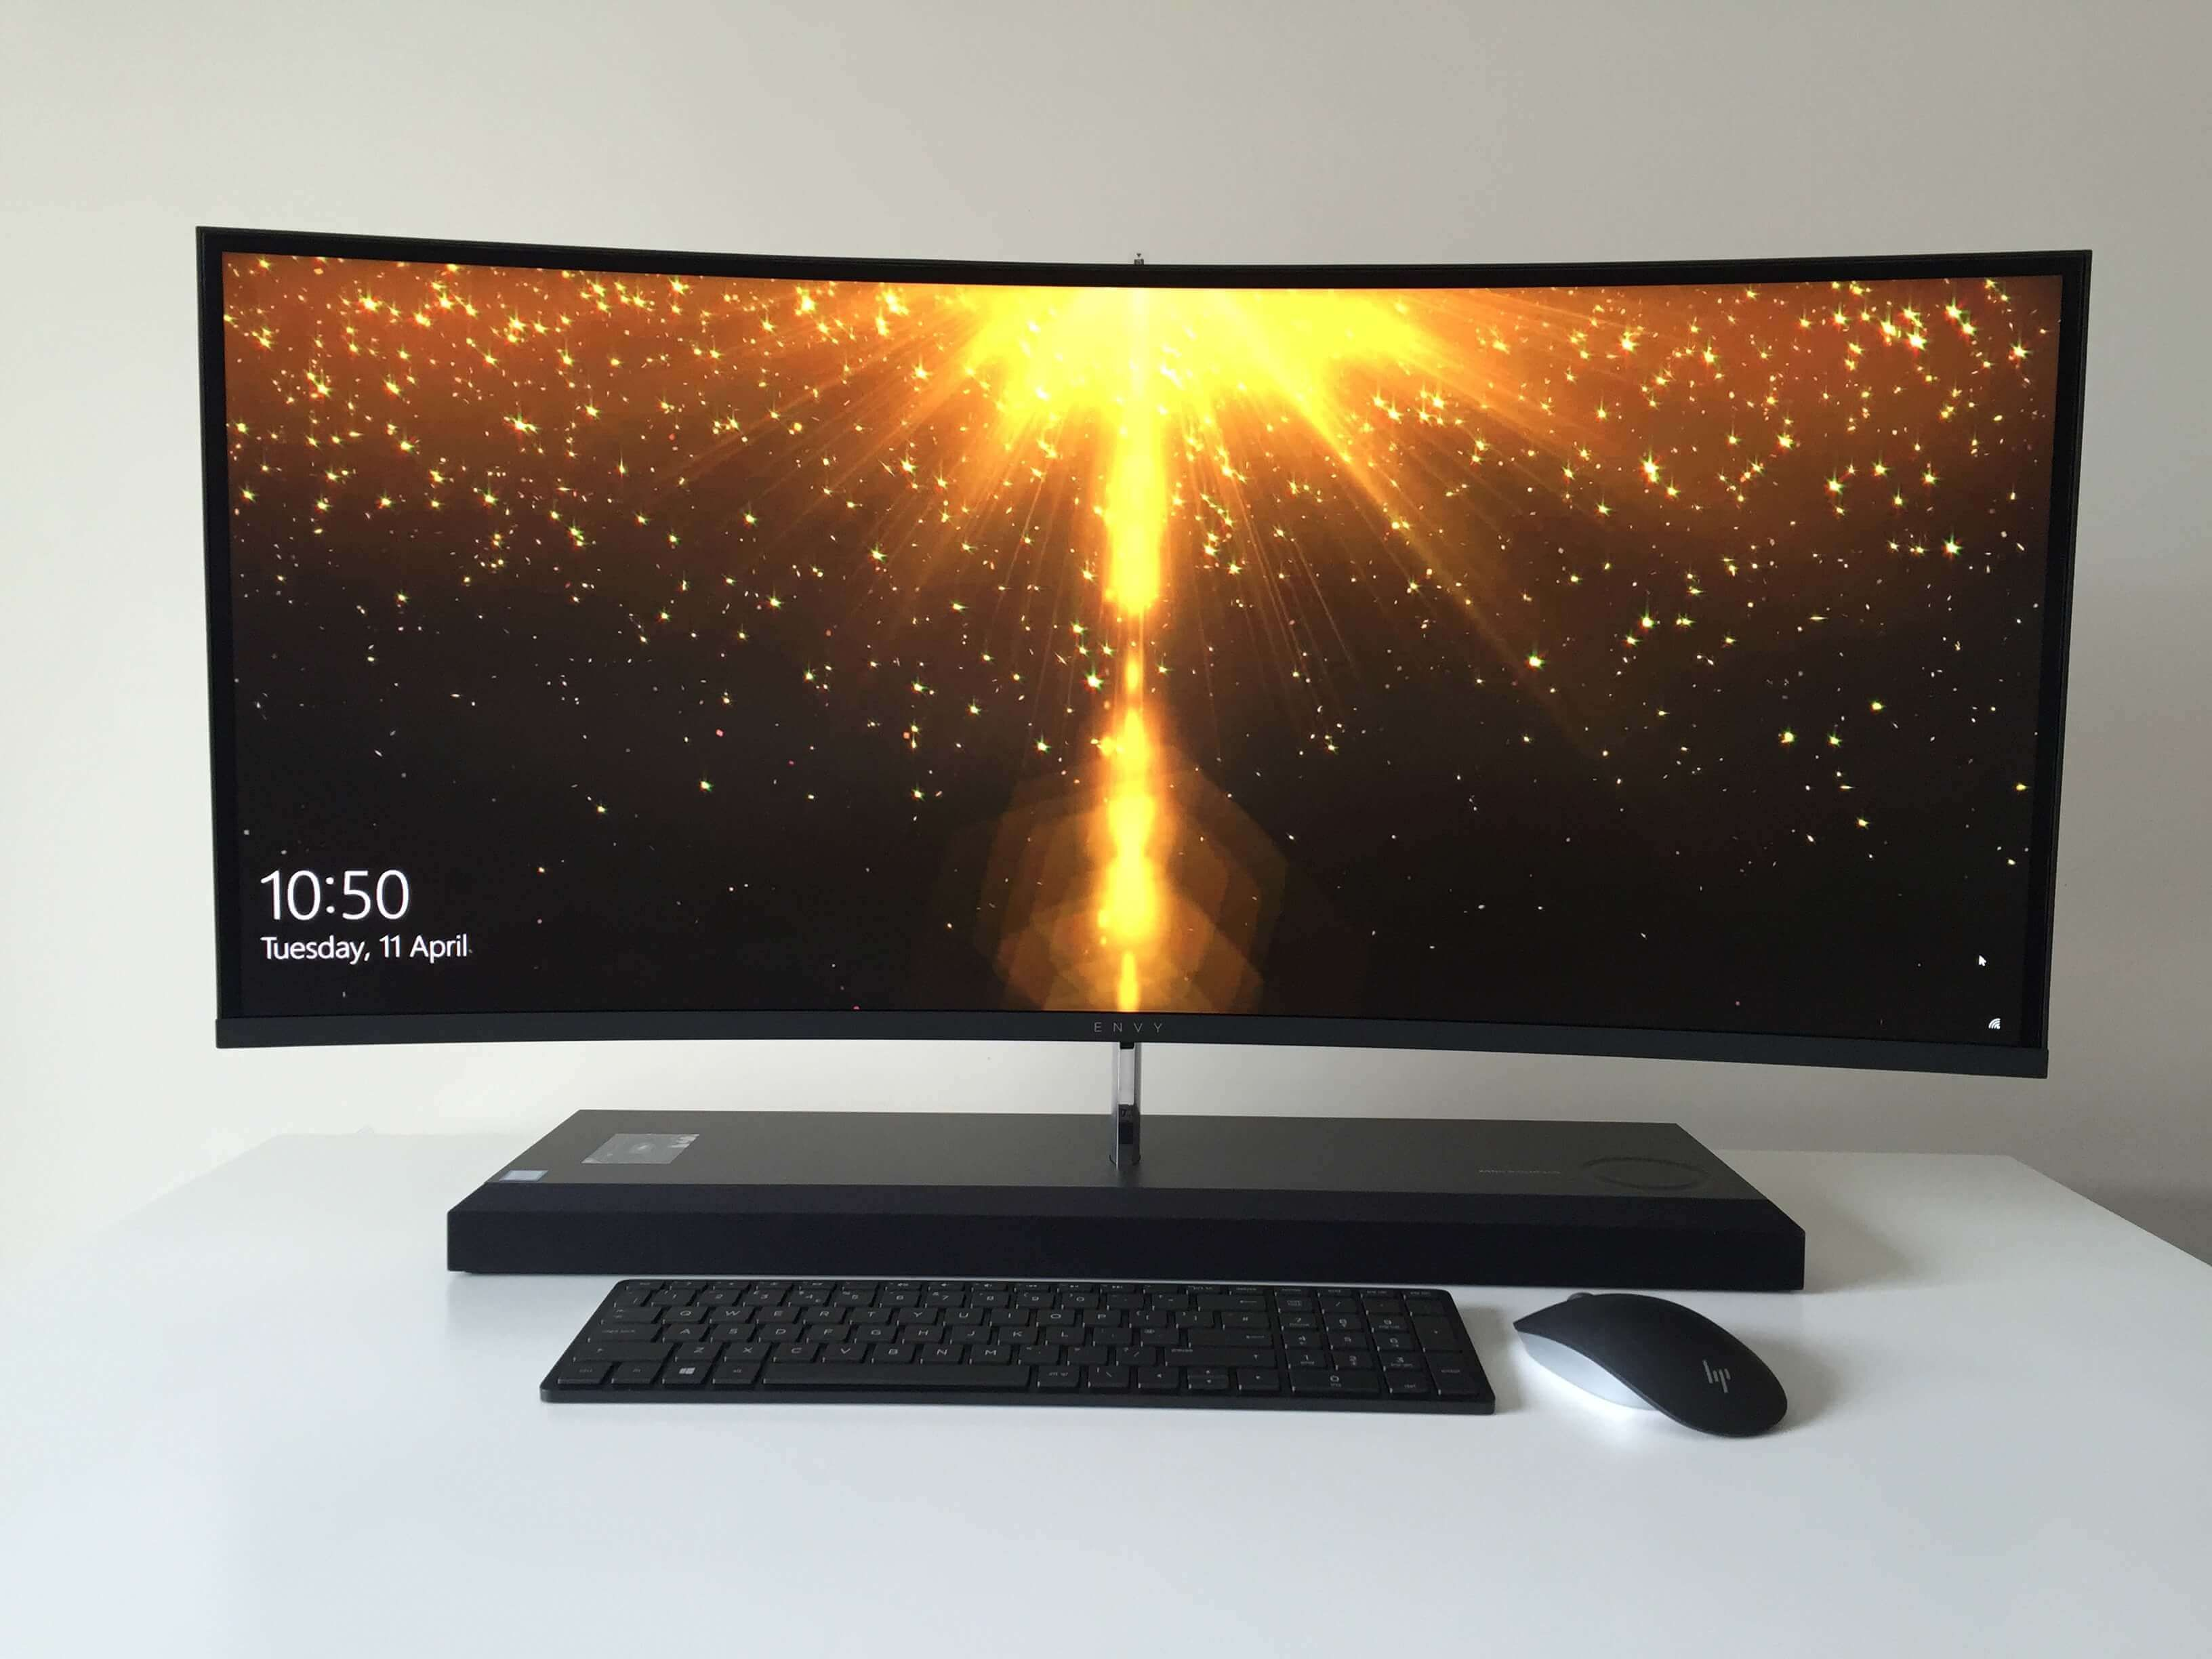 Hp Envy Curved All In One Desktop Review Techx Reviews Curve Latest Laptop